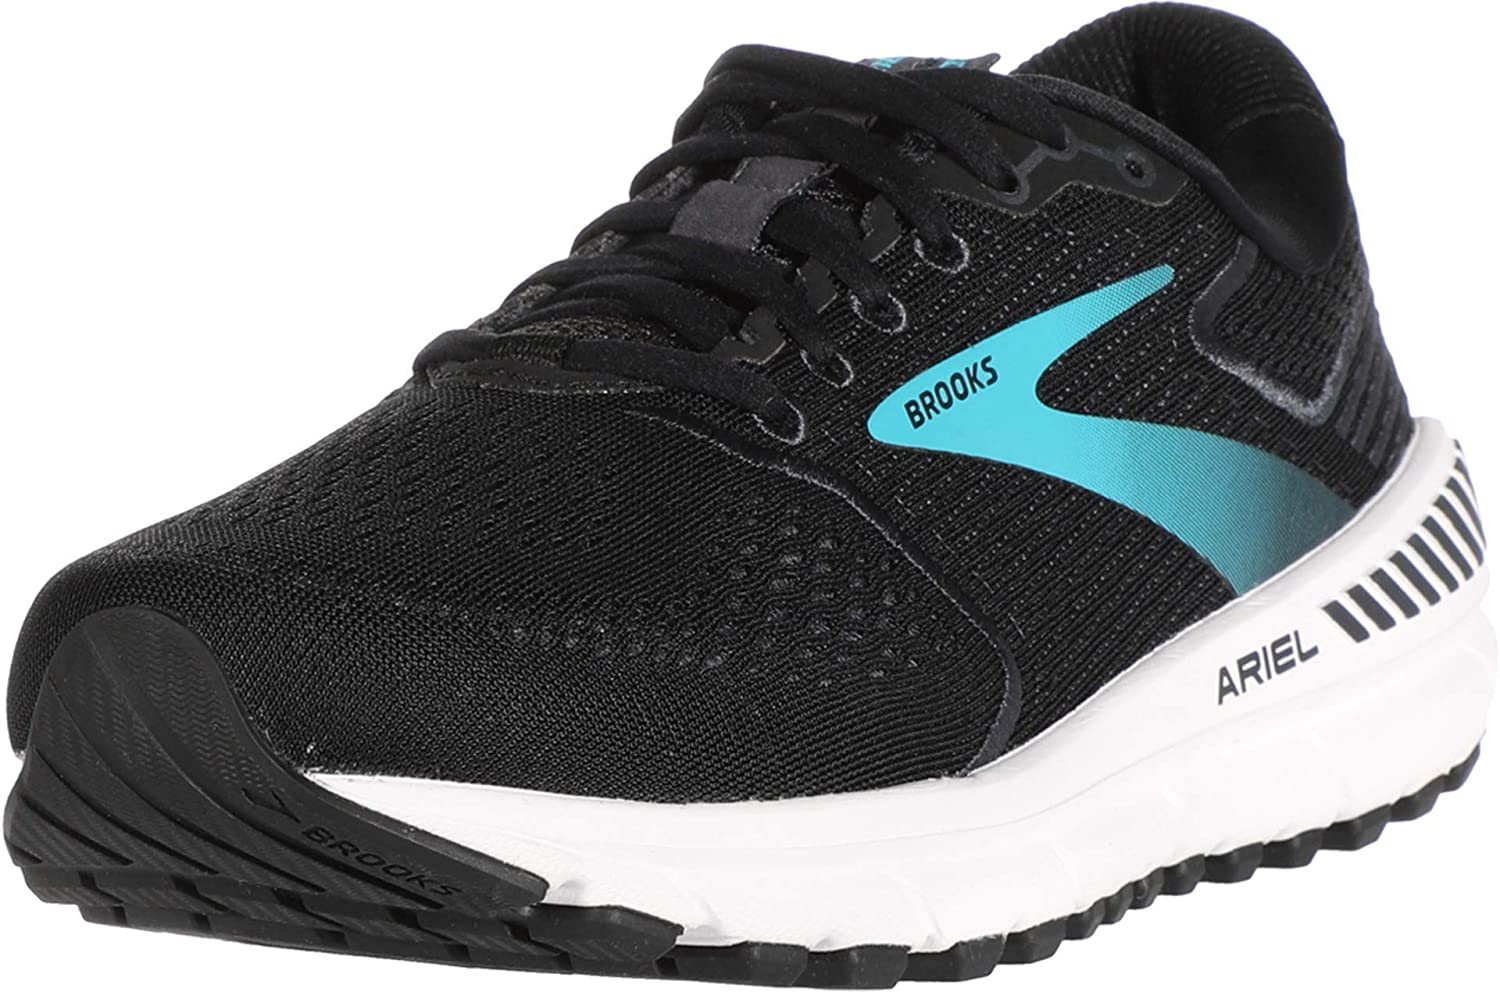 Women's Brooks Ariel '14